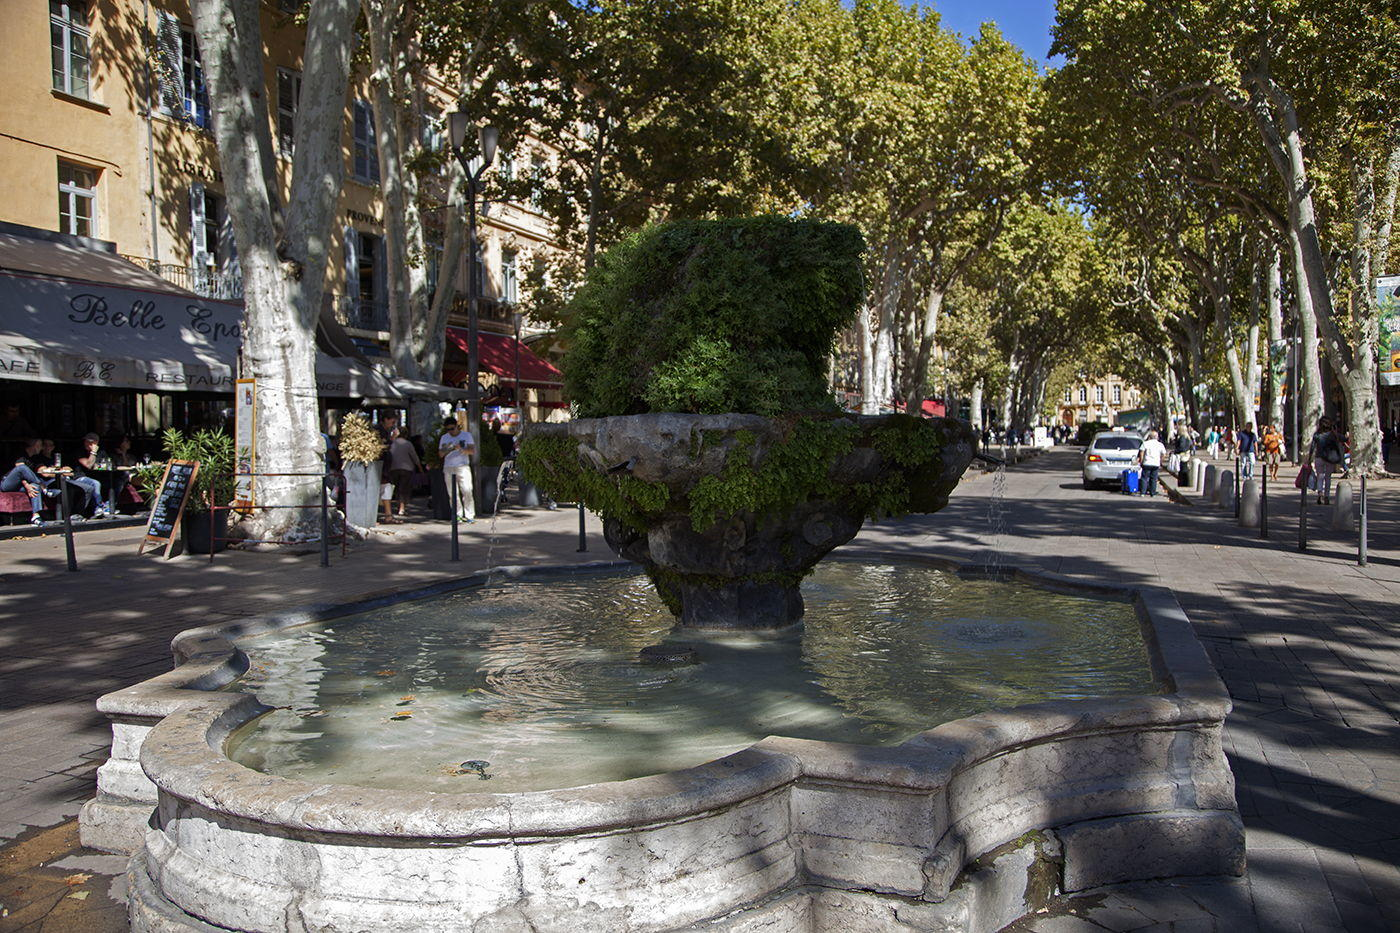 The 9 cannons fountain on the Cours Mirabeau at Aix-en Provence #AixenProvence @PaulShawcross